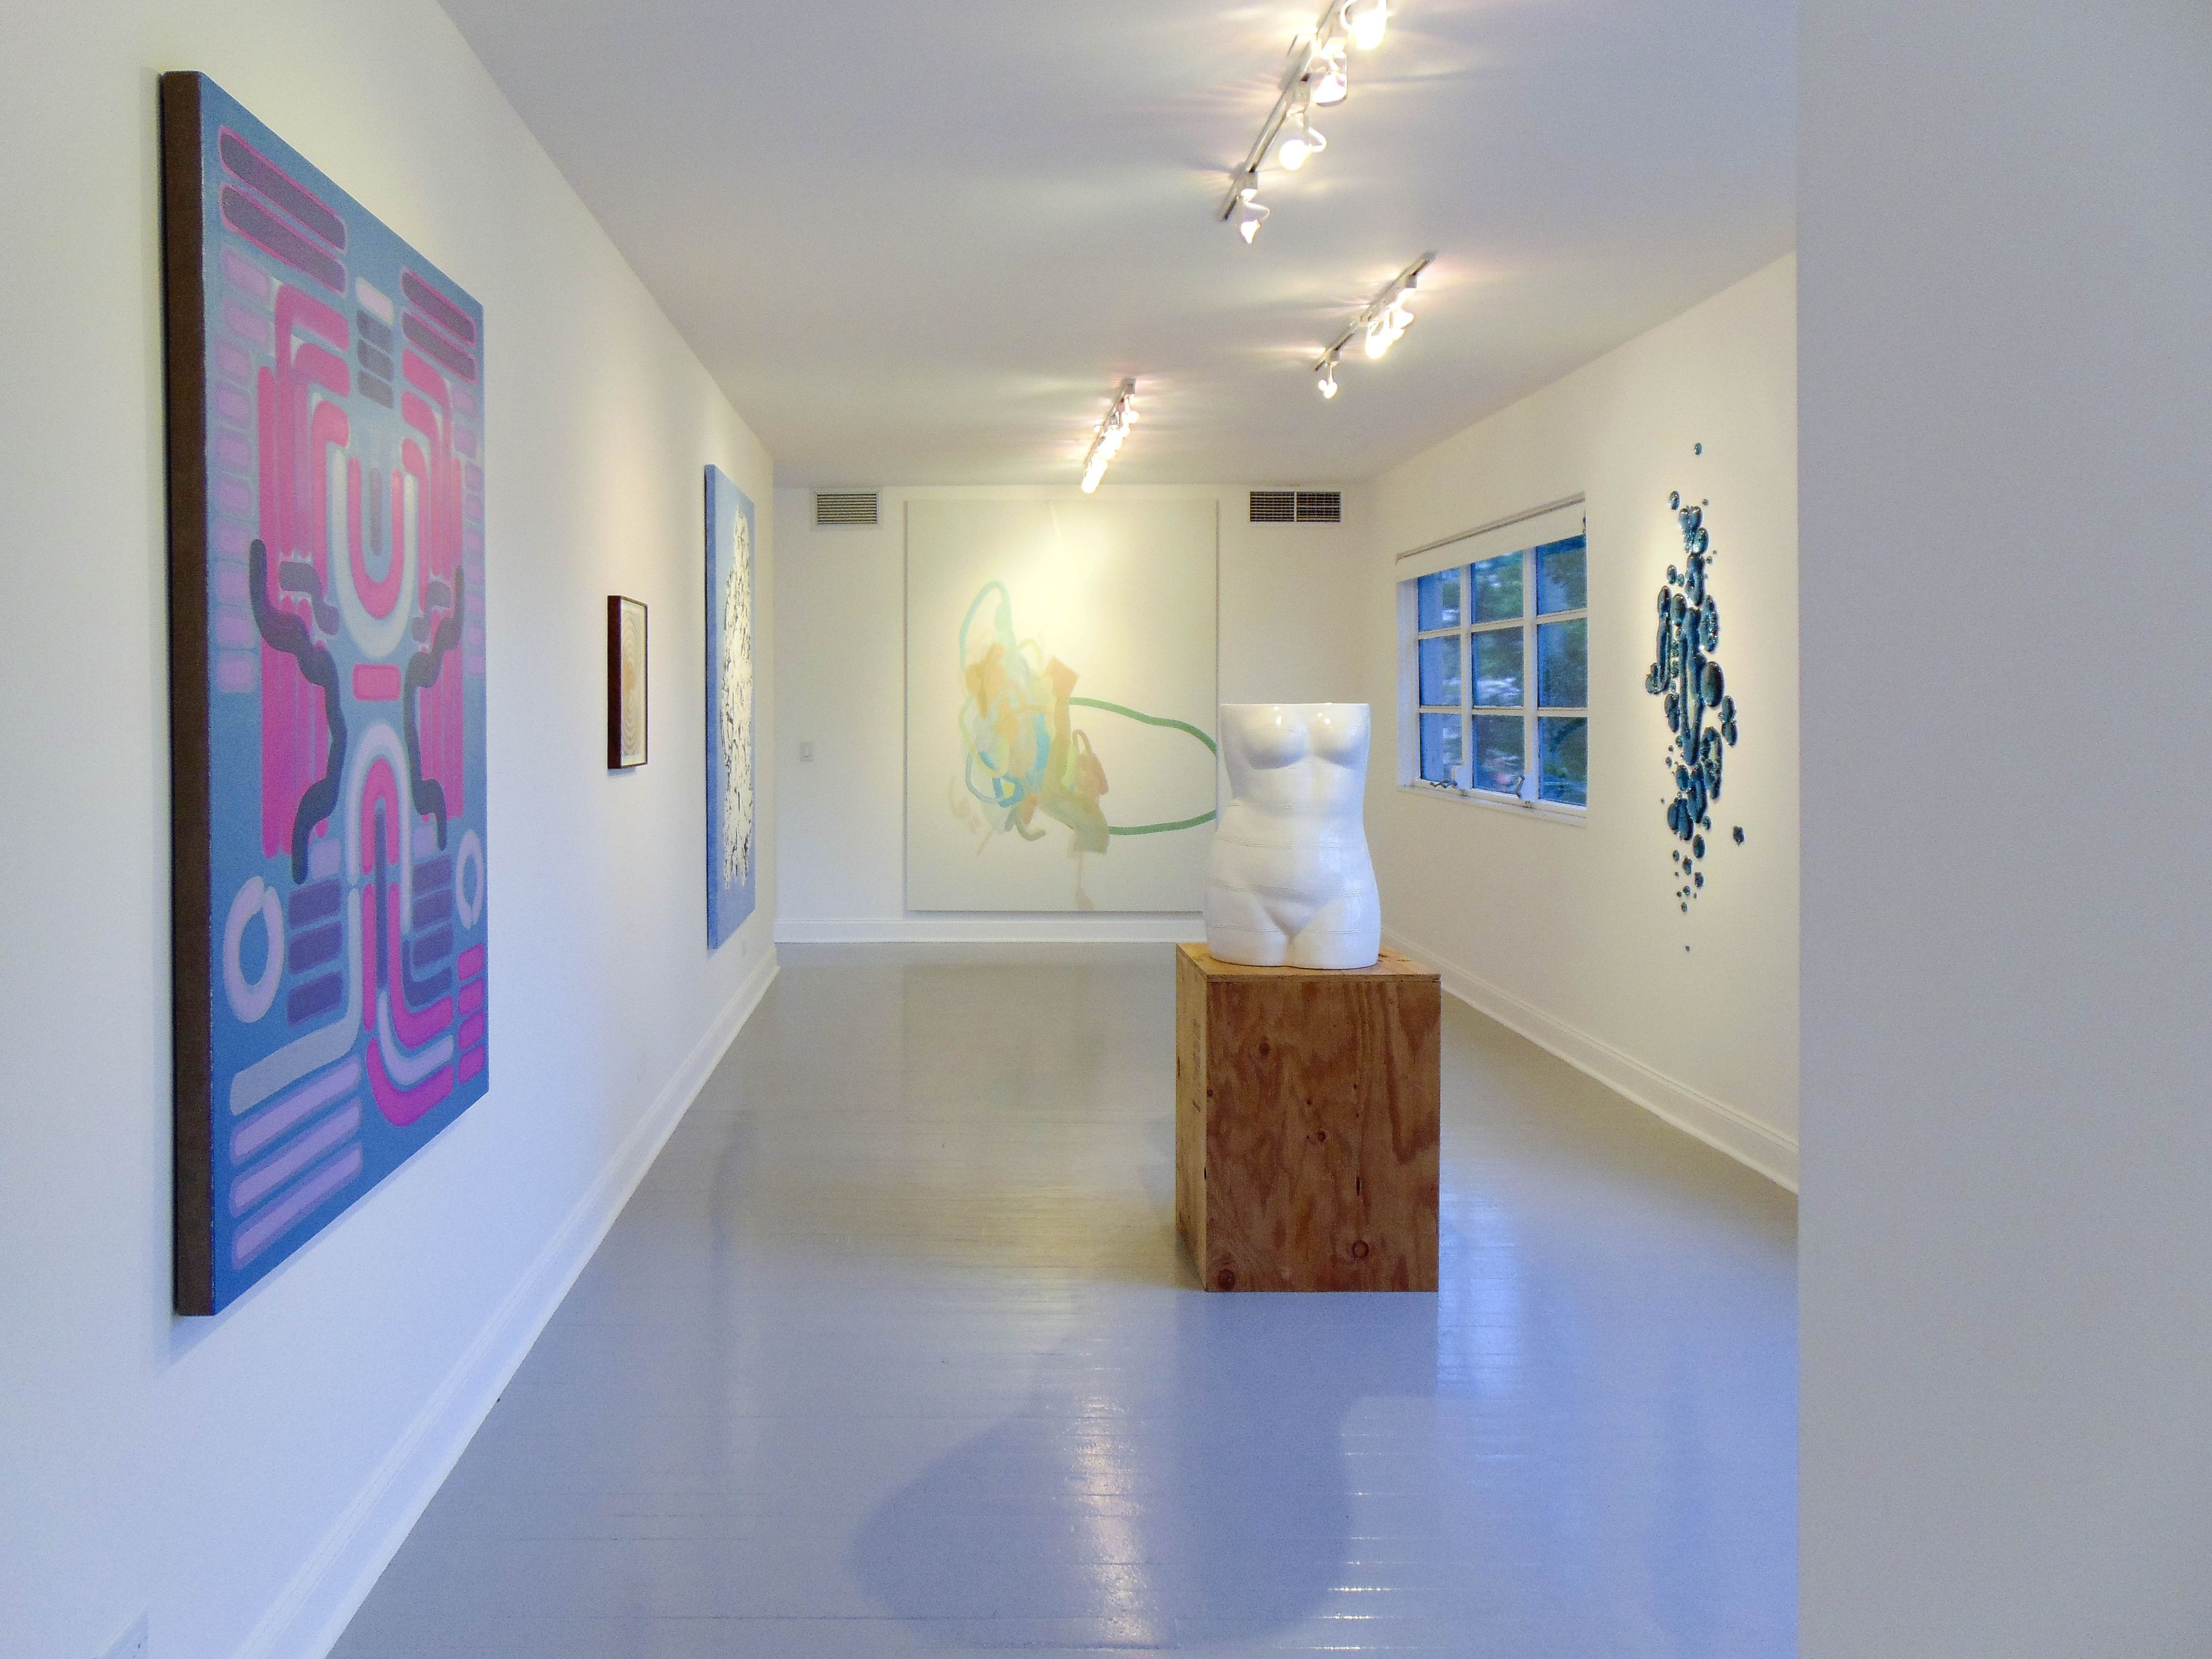 Lily Stockman, Andrew Brischler, Florence Derive, Michael Manning, Amy Bessone, and Rob Wynne on view during Judith Eisler Gloria (from Left to Right)